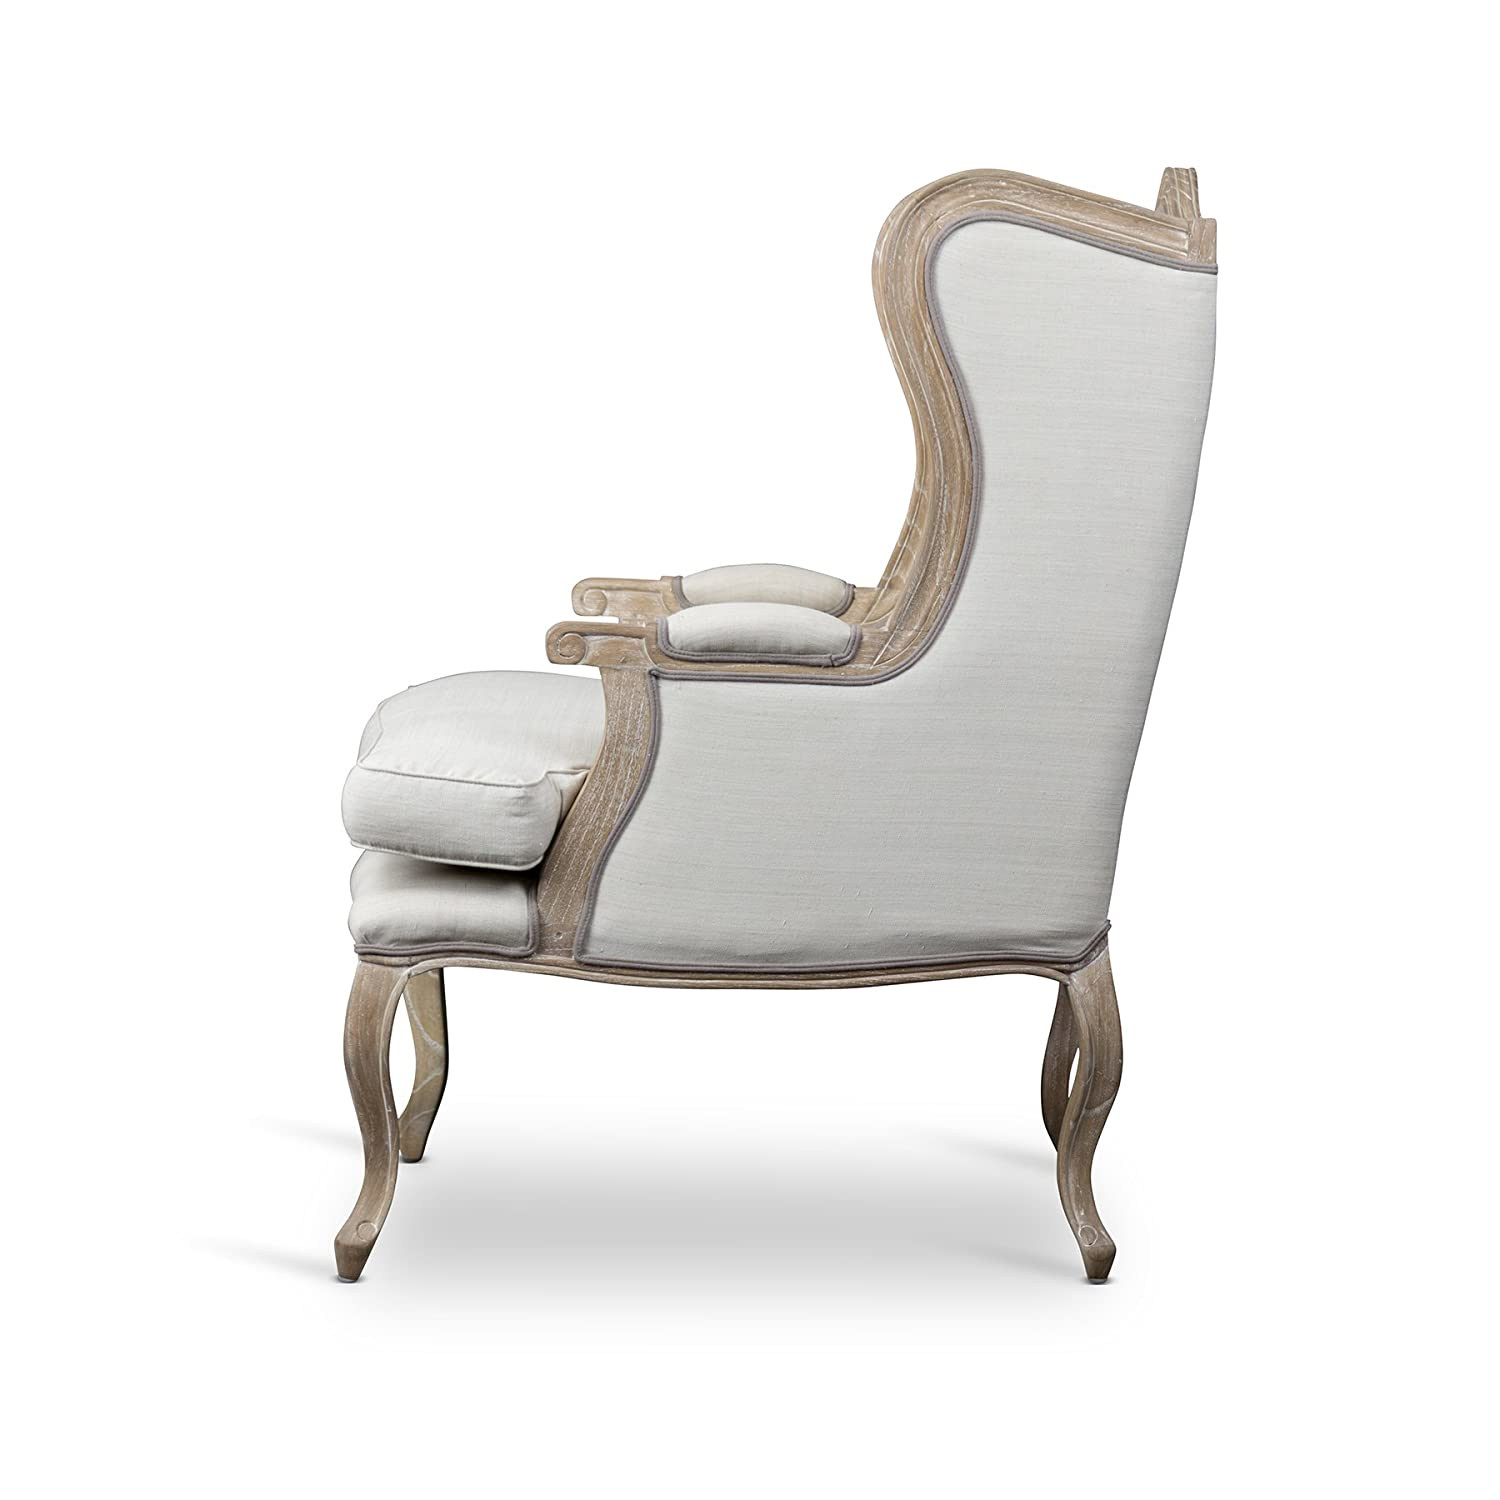 French Country Wing Chair. French Country Furniture Finds. Because European country and French farmhouse style is easy to love. Rustic elegant charm is lovely indeed.